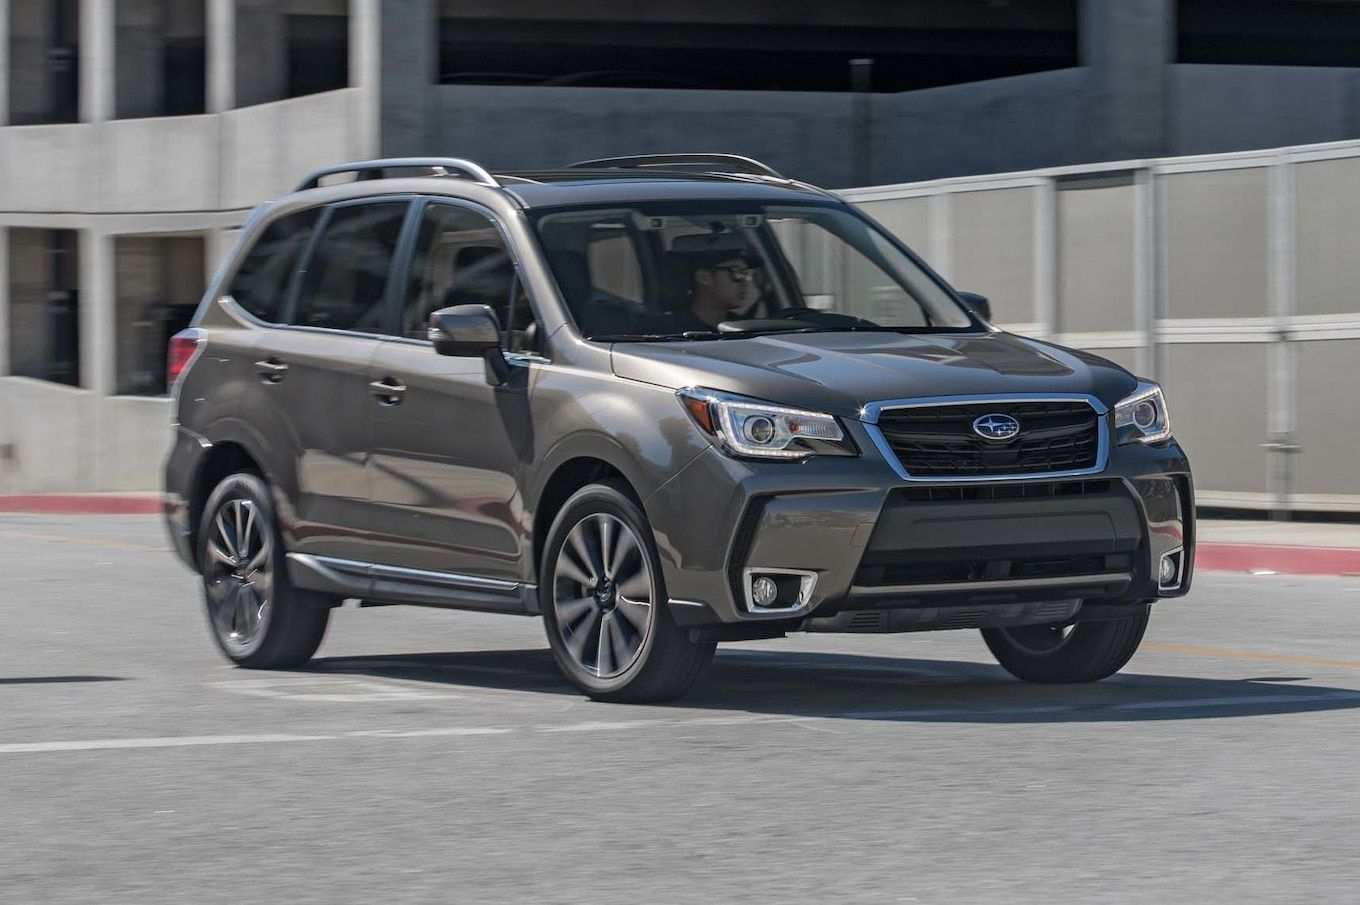 27 New 2020 Subaru Forester Gas Mileage Release by 2020 Subaru Forester Gas Mileage